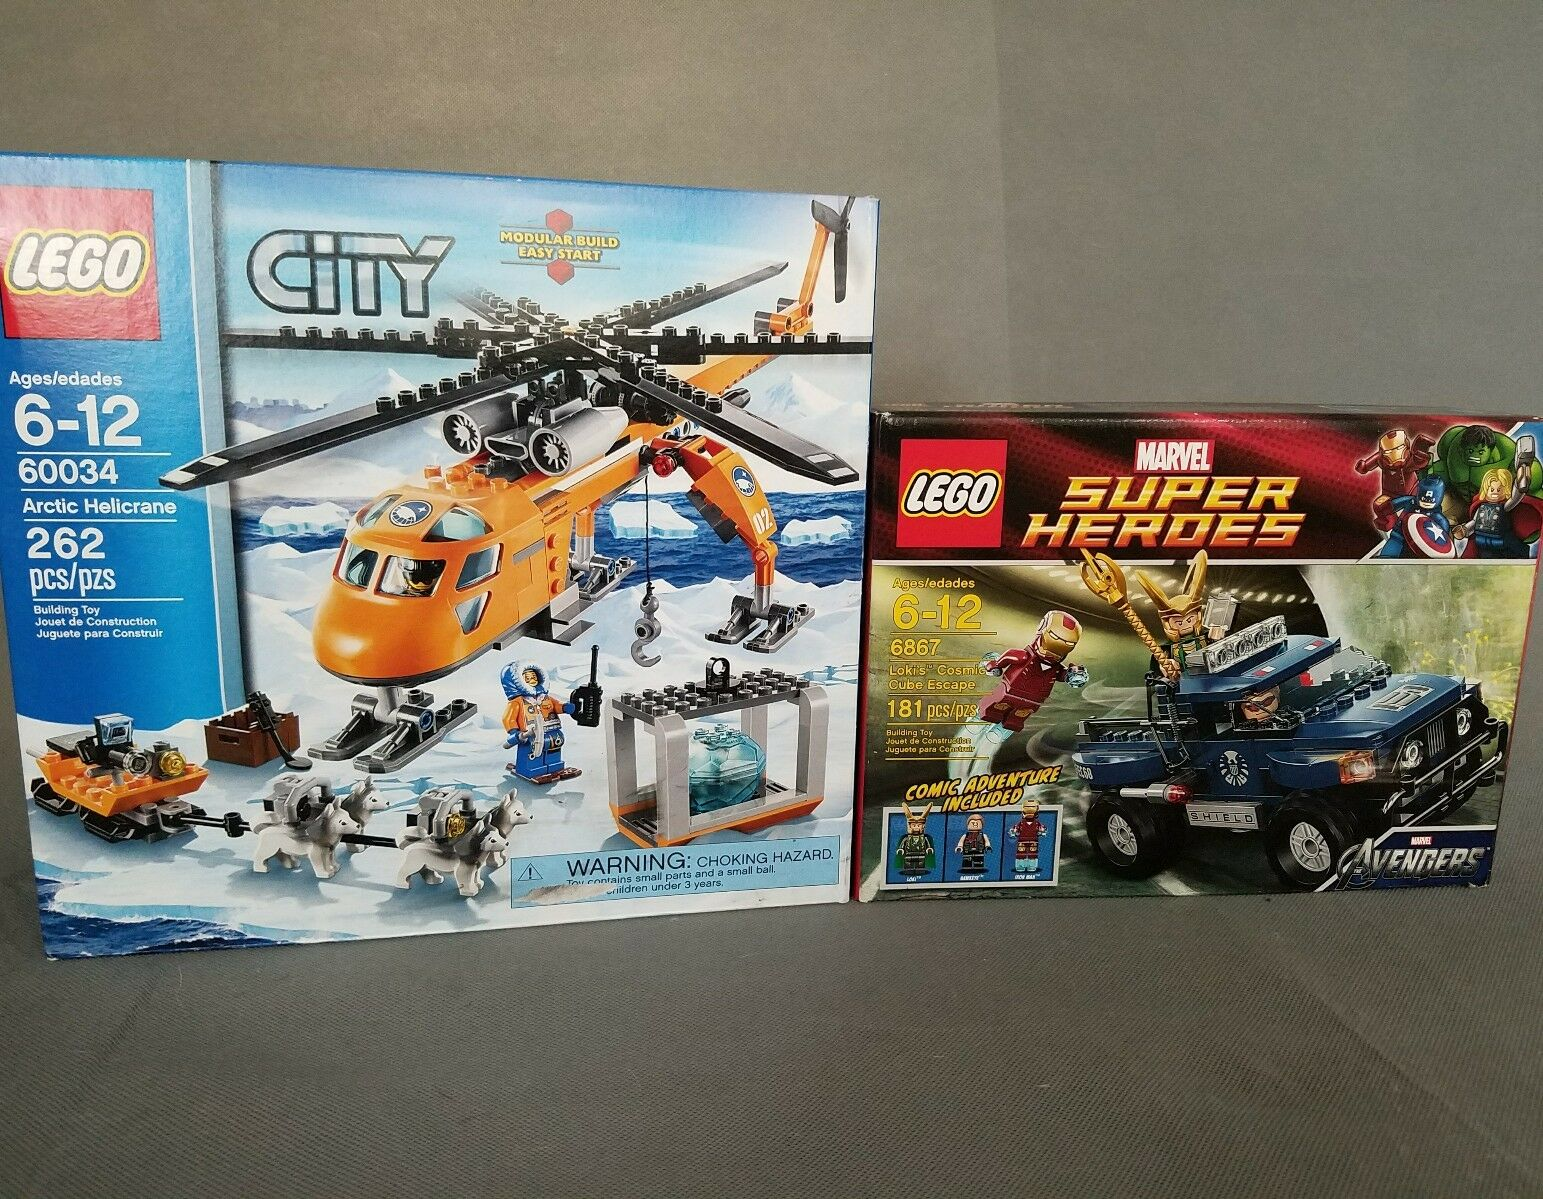 Lot lego sets 60034 city arctic helicrane and 6867 marvel super heroes